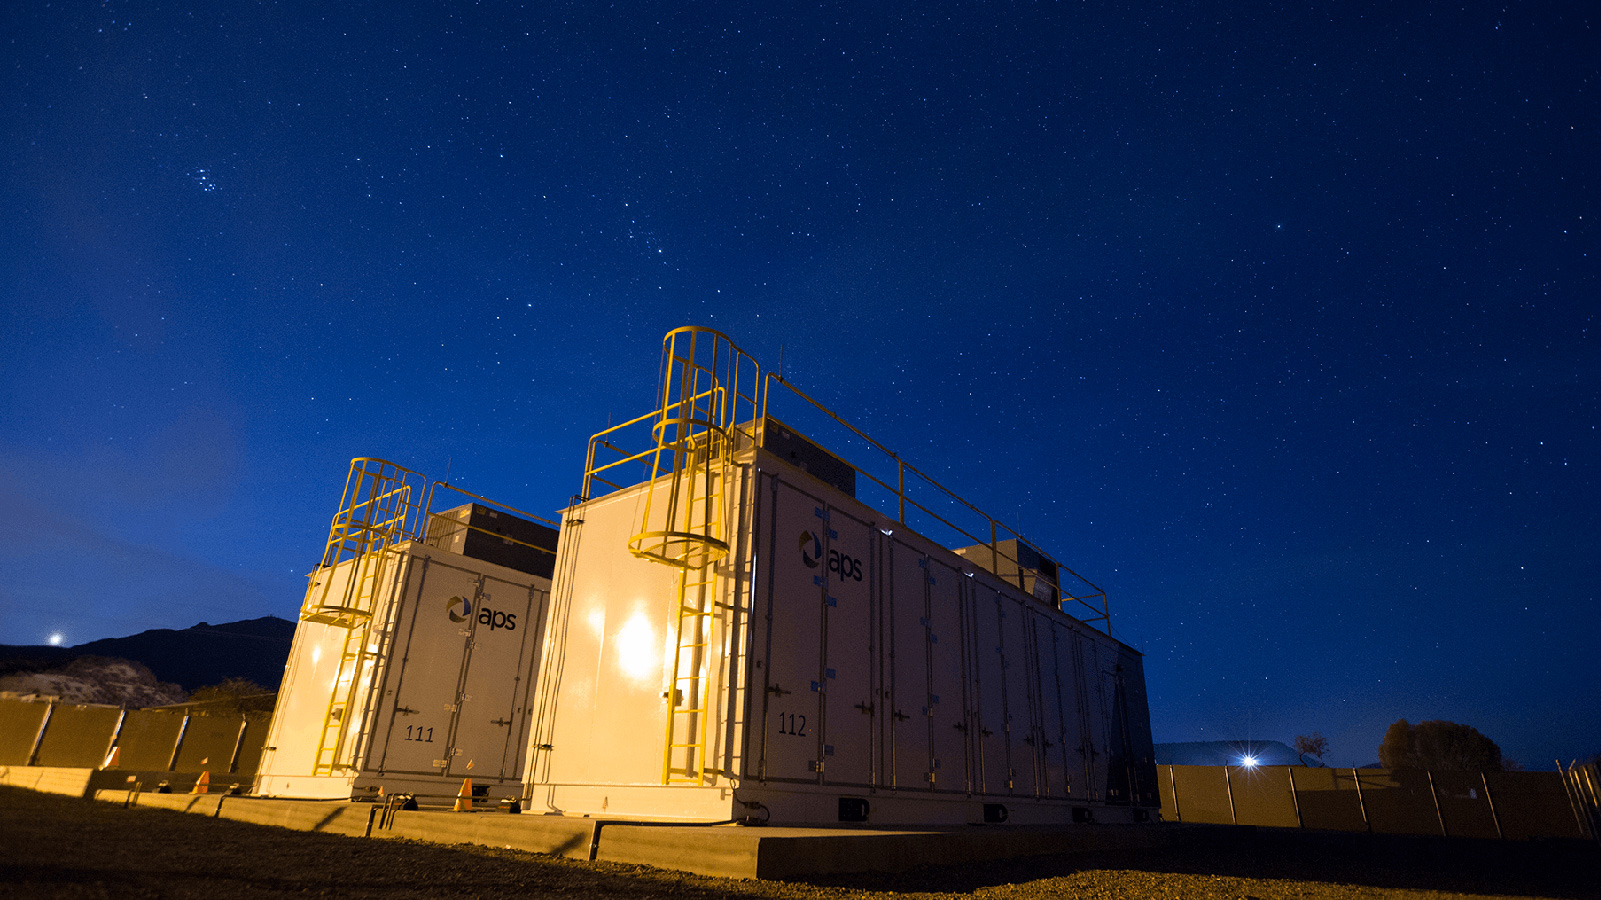 Punkin Center battery storage facility at night.